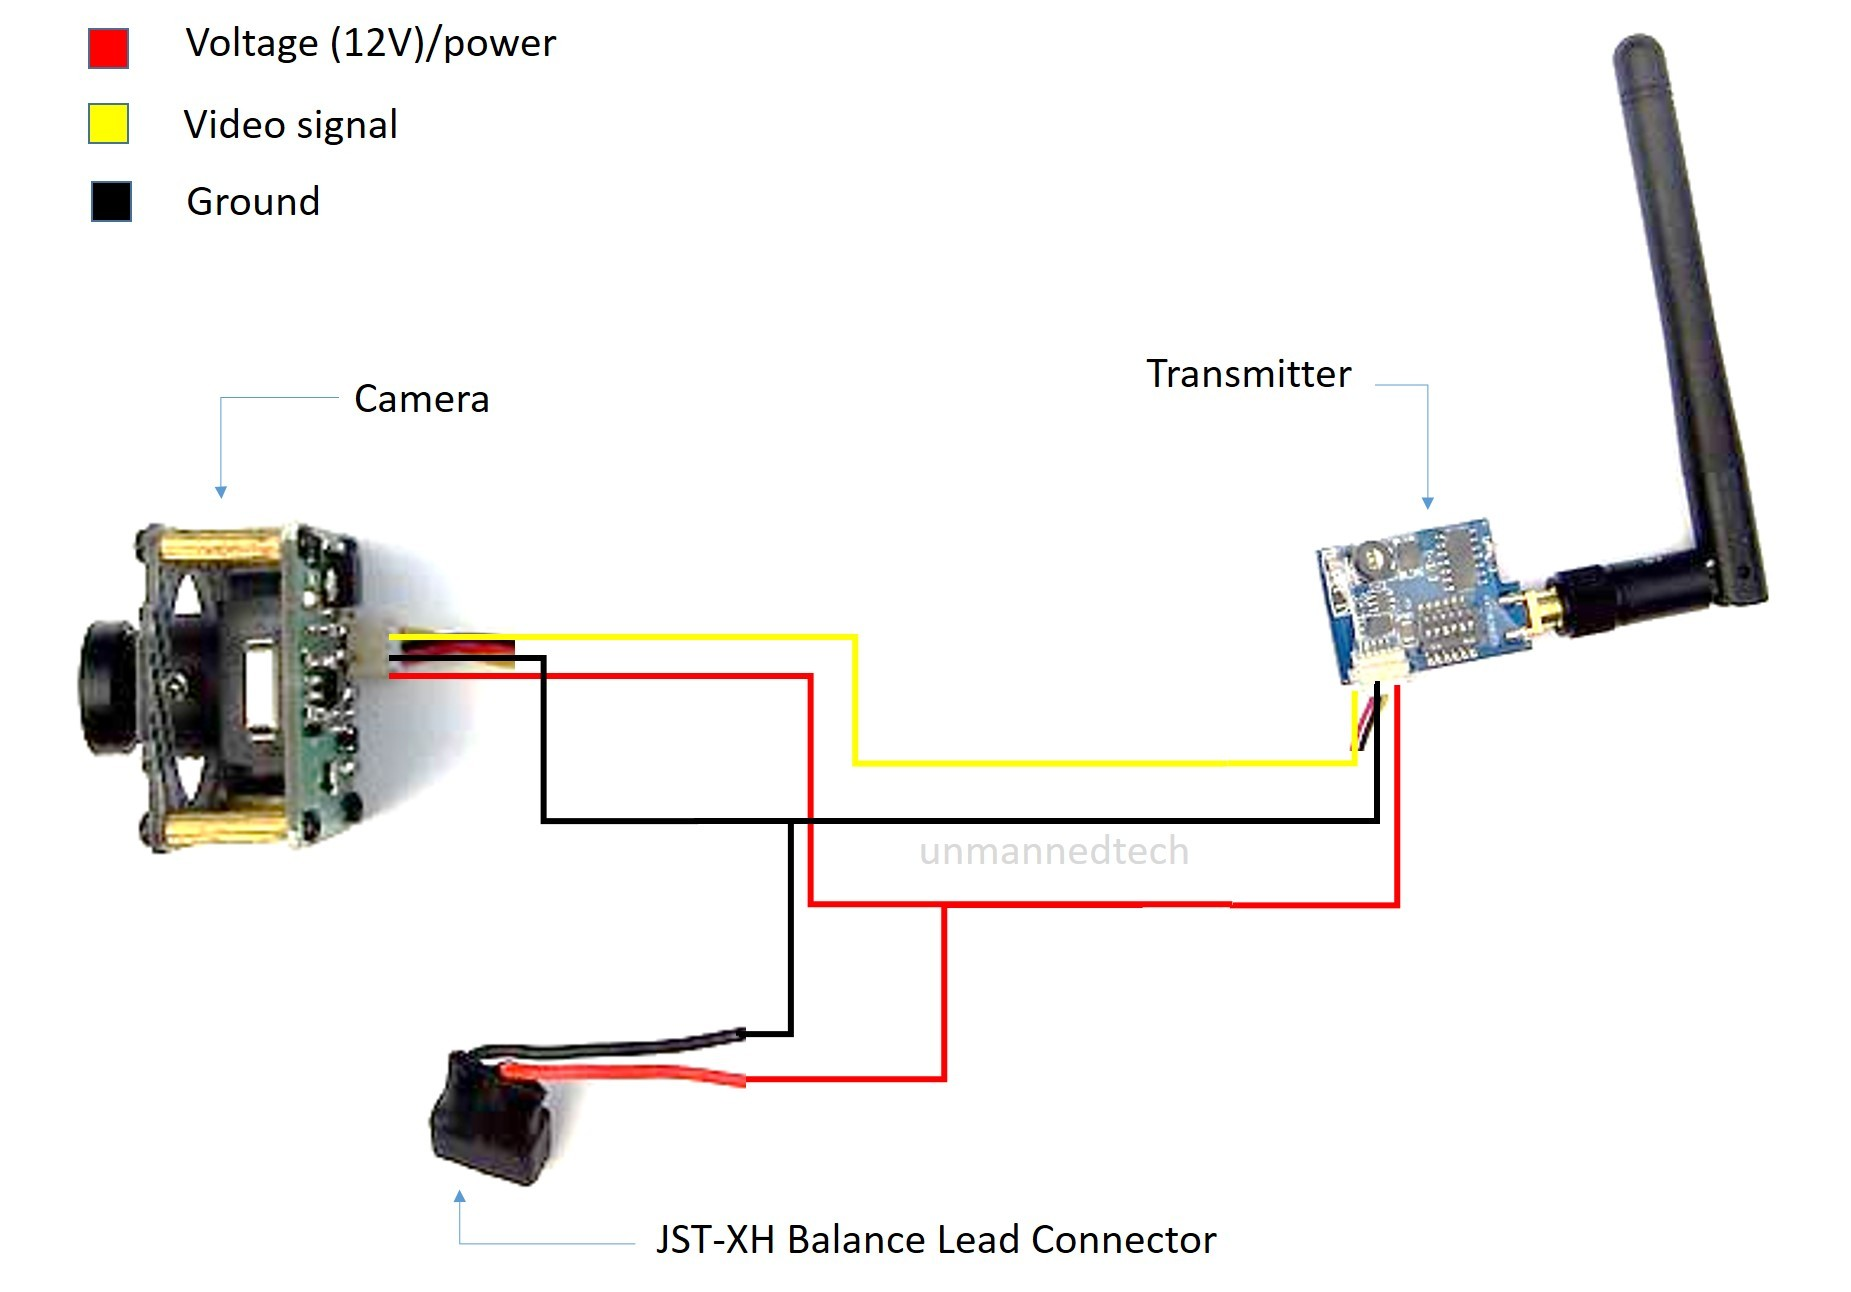 Beginners Guide On How To Build A Mini Fpv 250 Quadcopter Using The System Phone Wiring Diagram Get Free Image About Camera Video Transmitter Wiring1851x1292 145 Kb